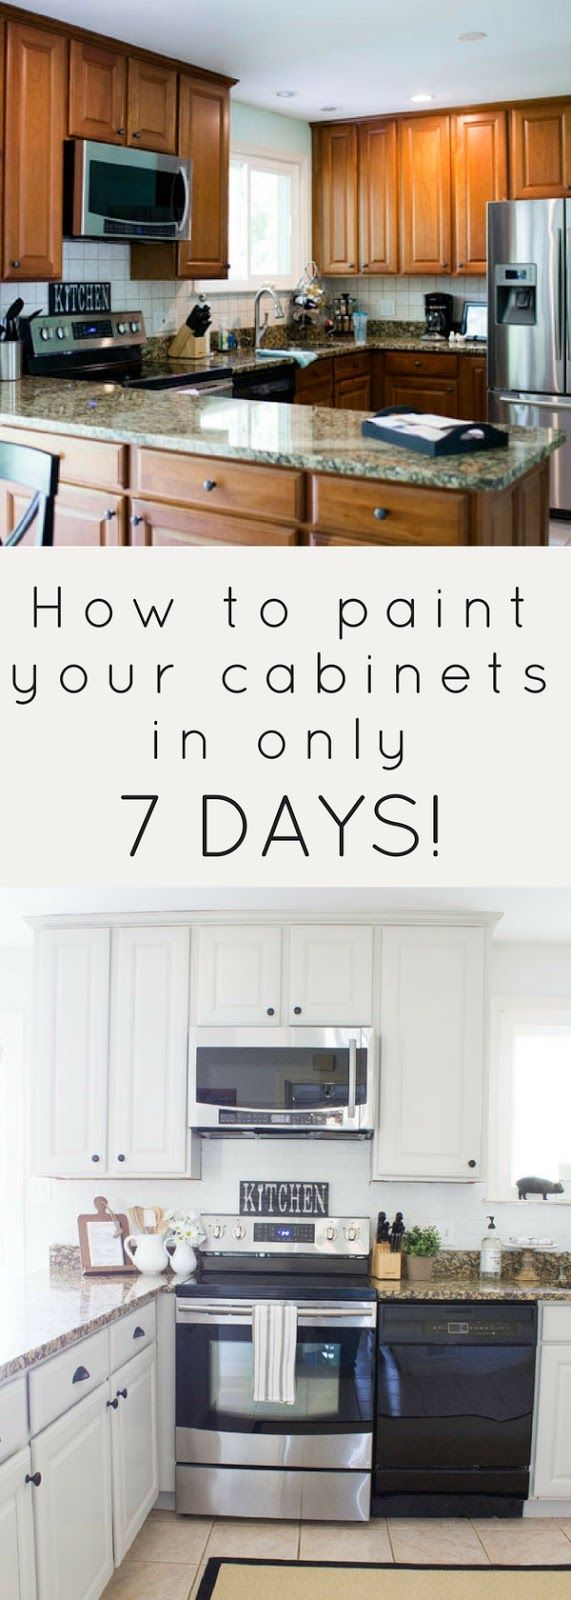 How To Paint Your Cabinets In 7 Days New Kitchen Cabinets Painting Kitchen Cabinets Kitchen Renovation